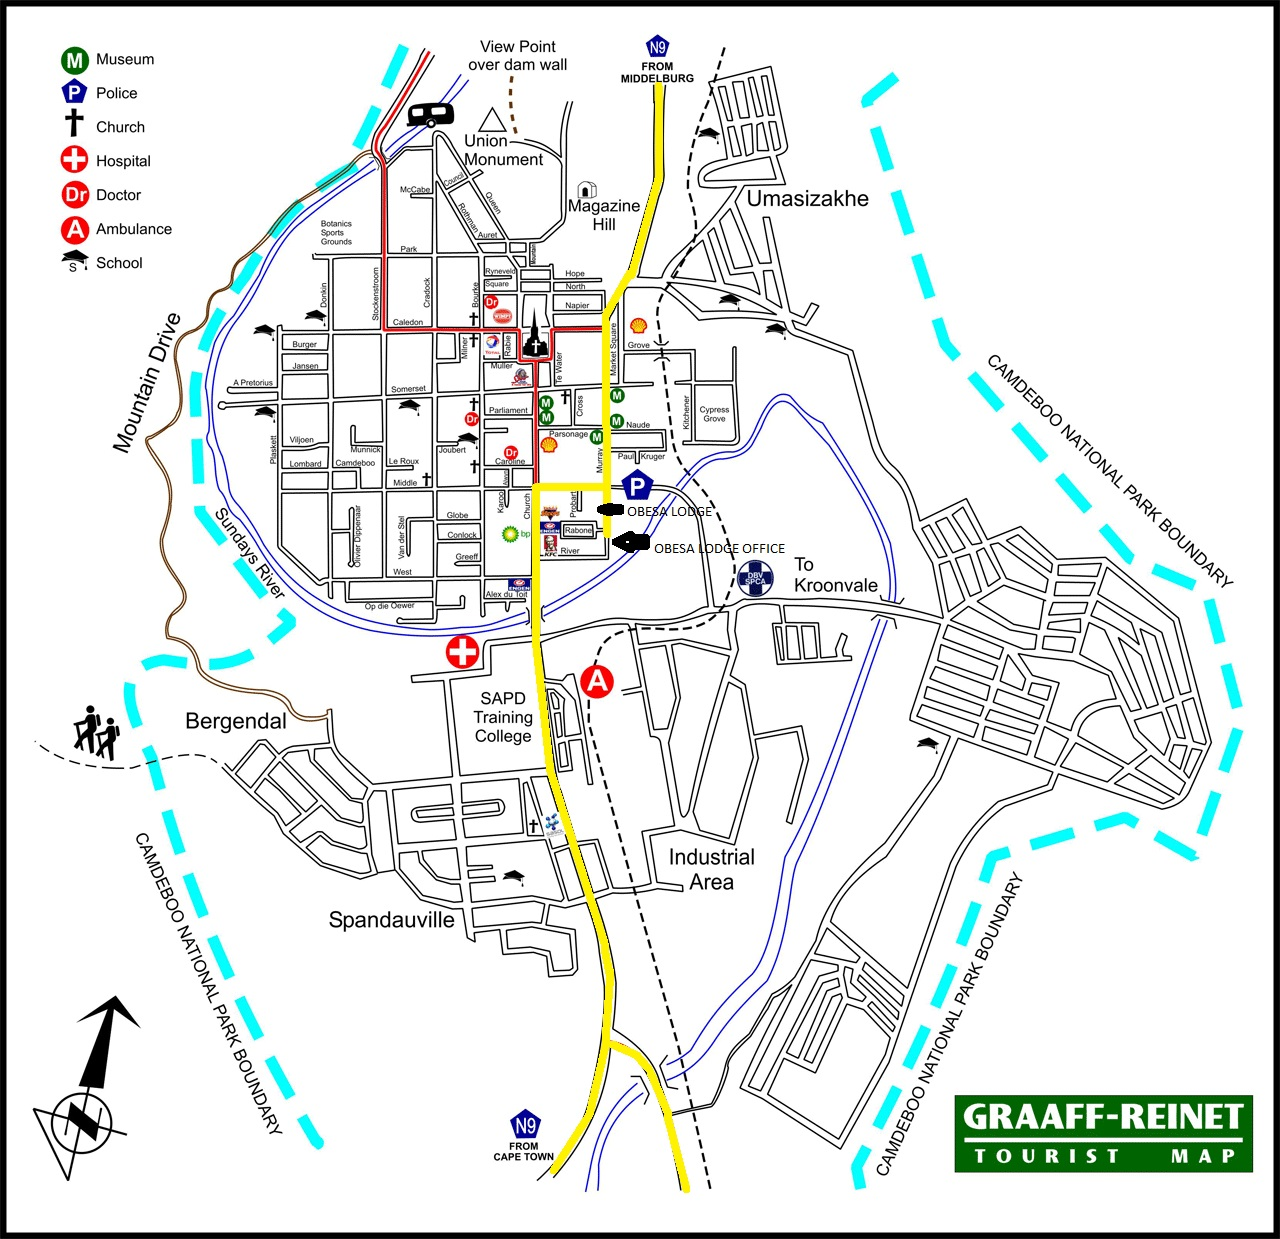 Directions to Obesa Lodge on Graaff-Reinet Map.